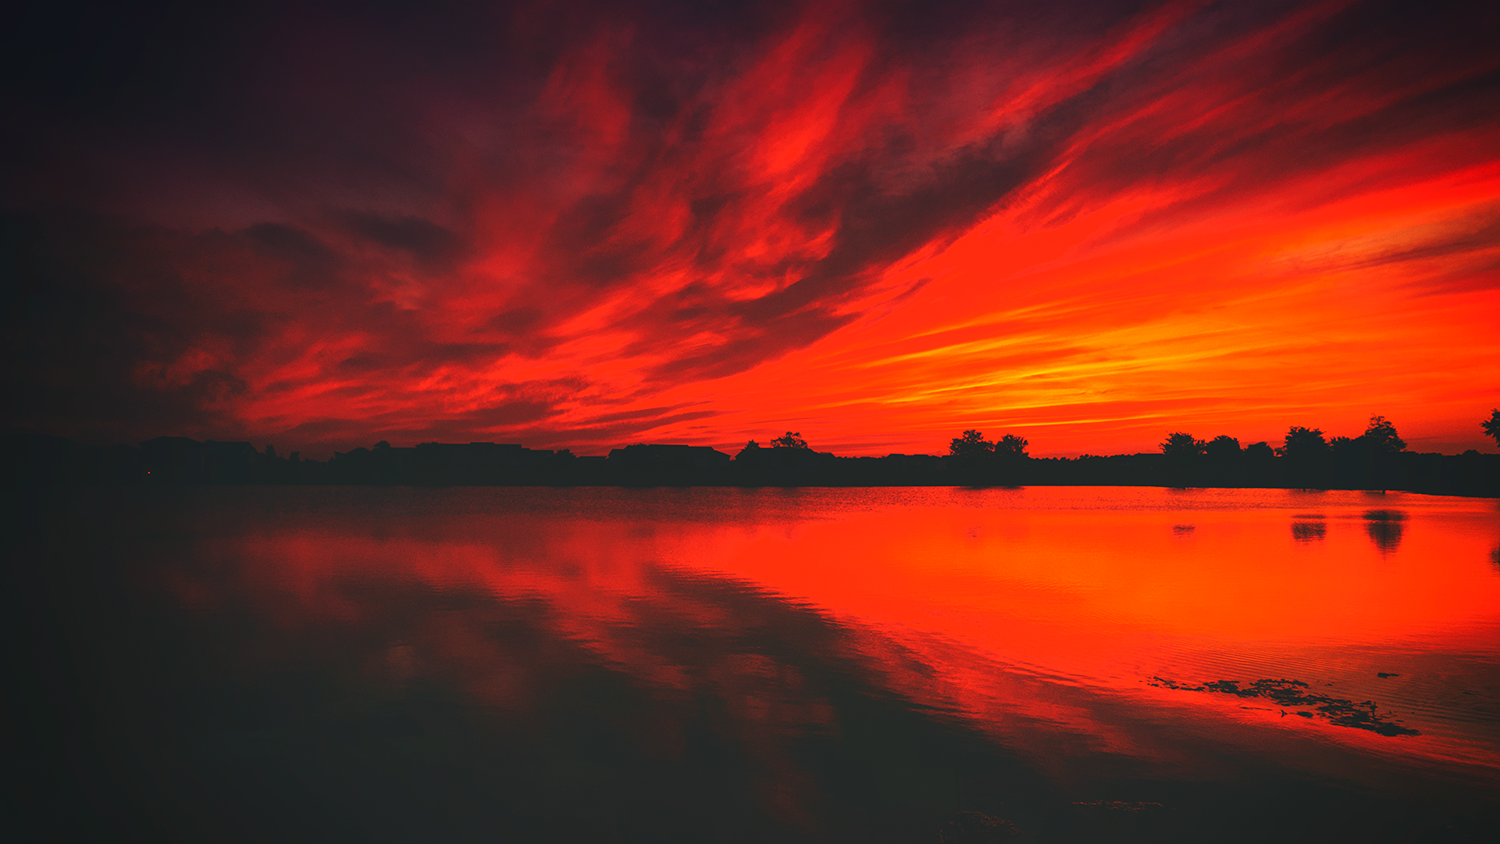 Red Sunset in Florida